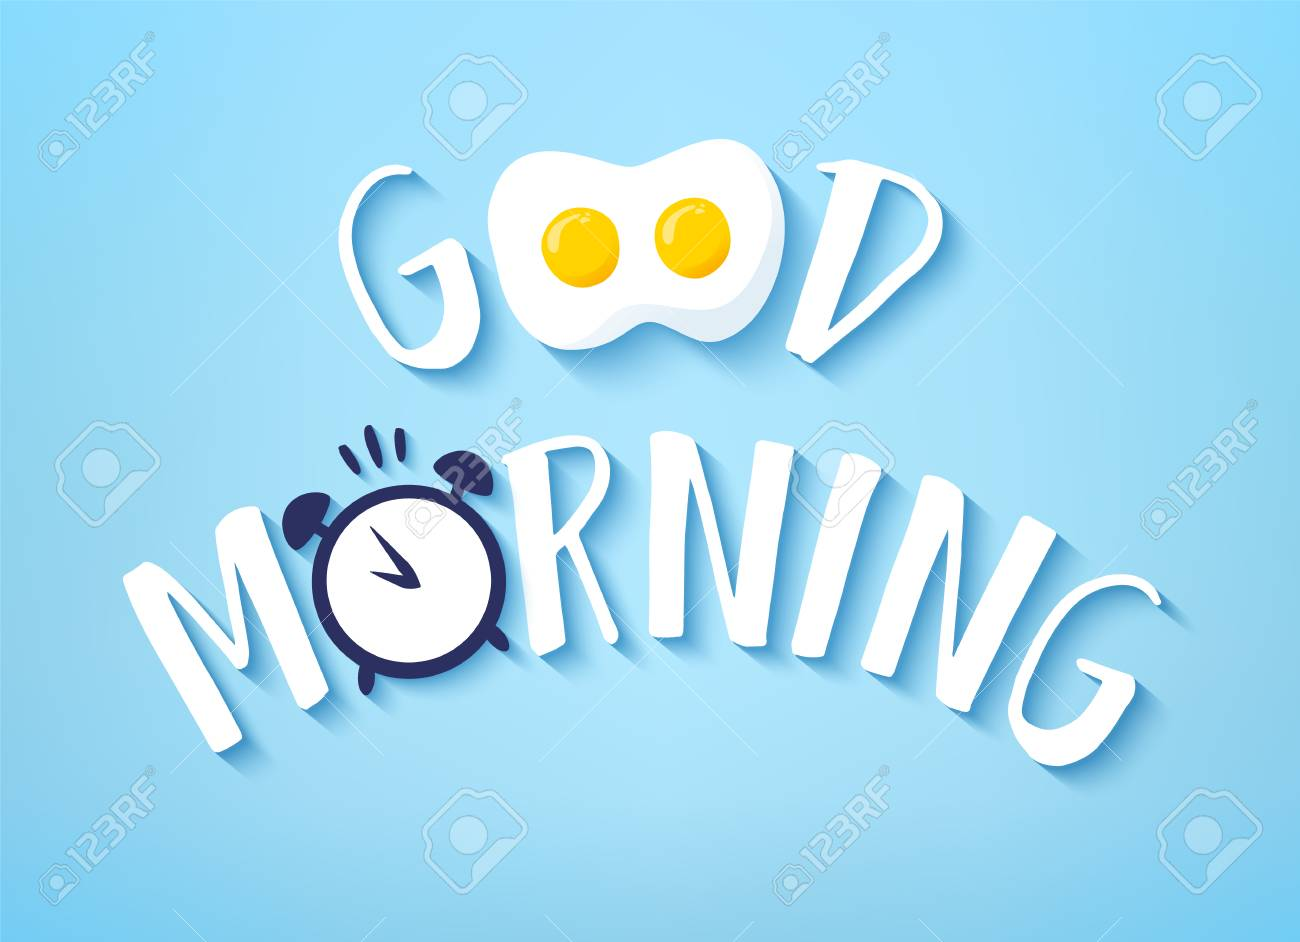 Vector banner for Breakfast with text Good Morning, fried egg and alarm clock on blue background. - 99043954